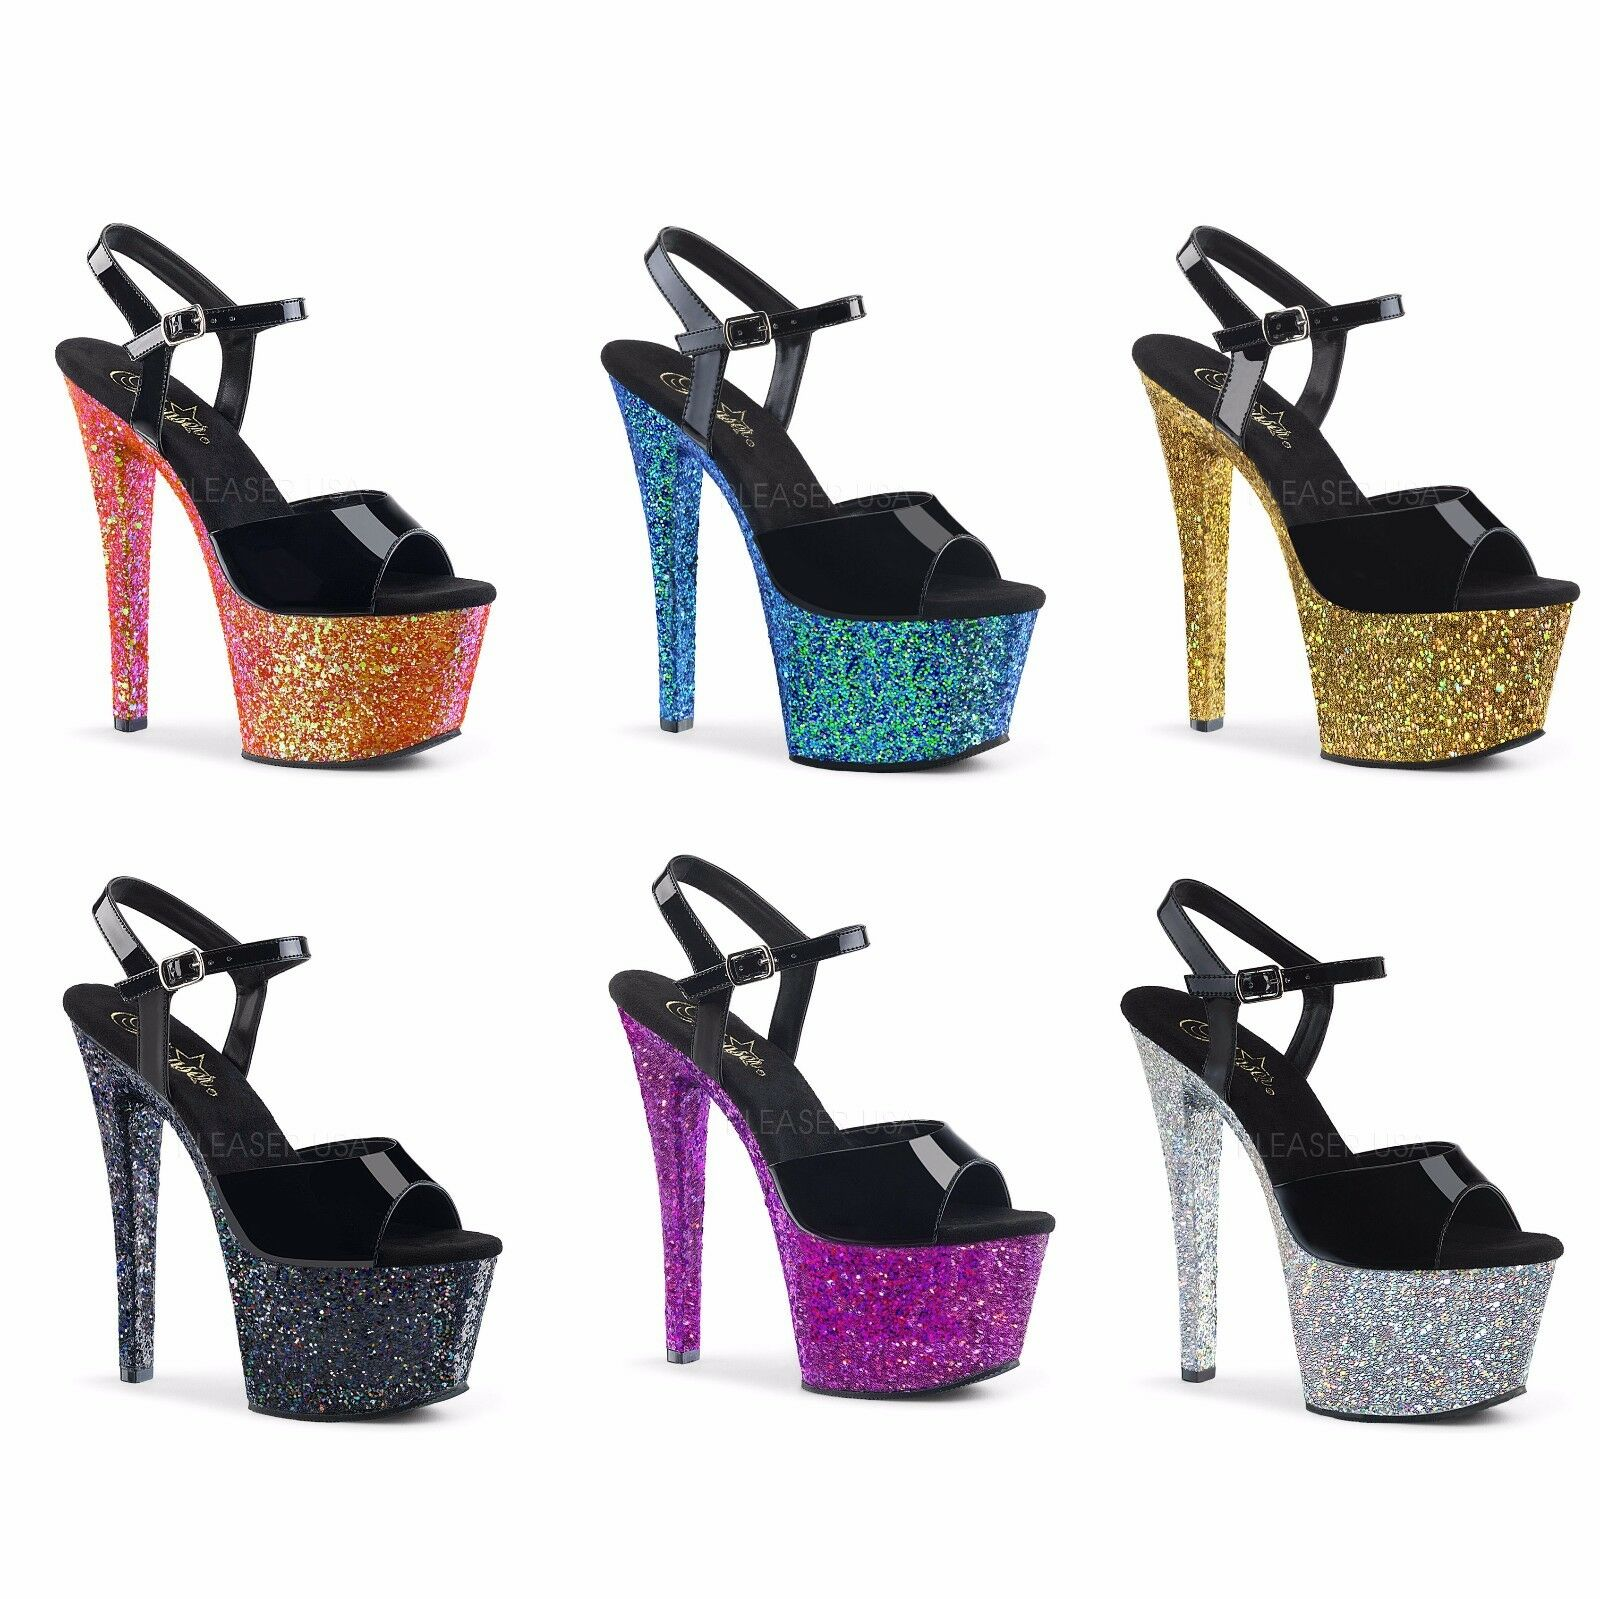 Pleaser SKY-309LG Exotic Dancing Ankle Strap Sandale Holographic Glitters 7